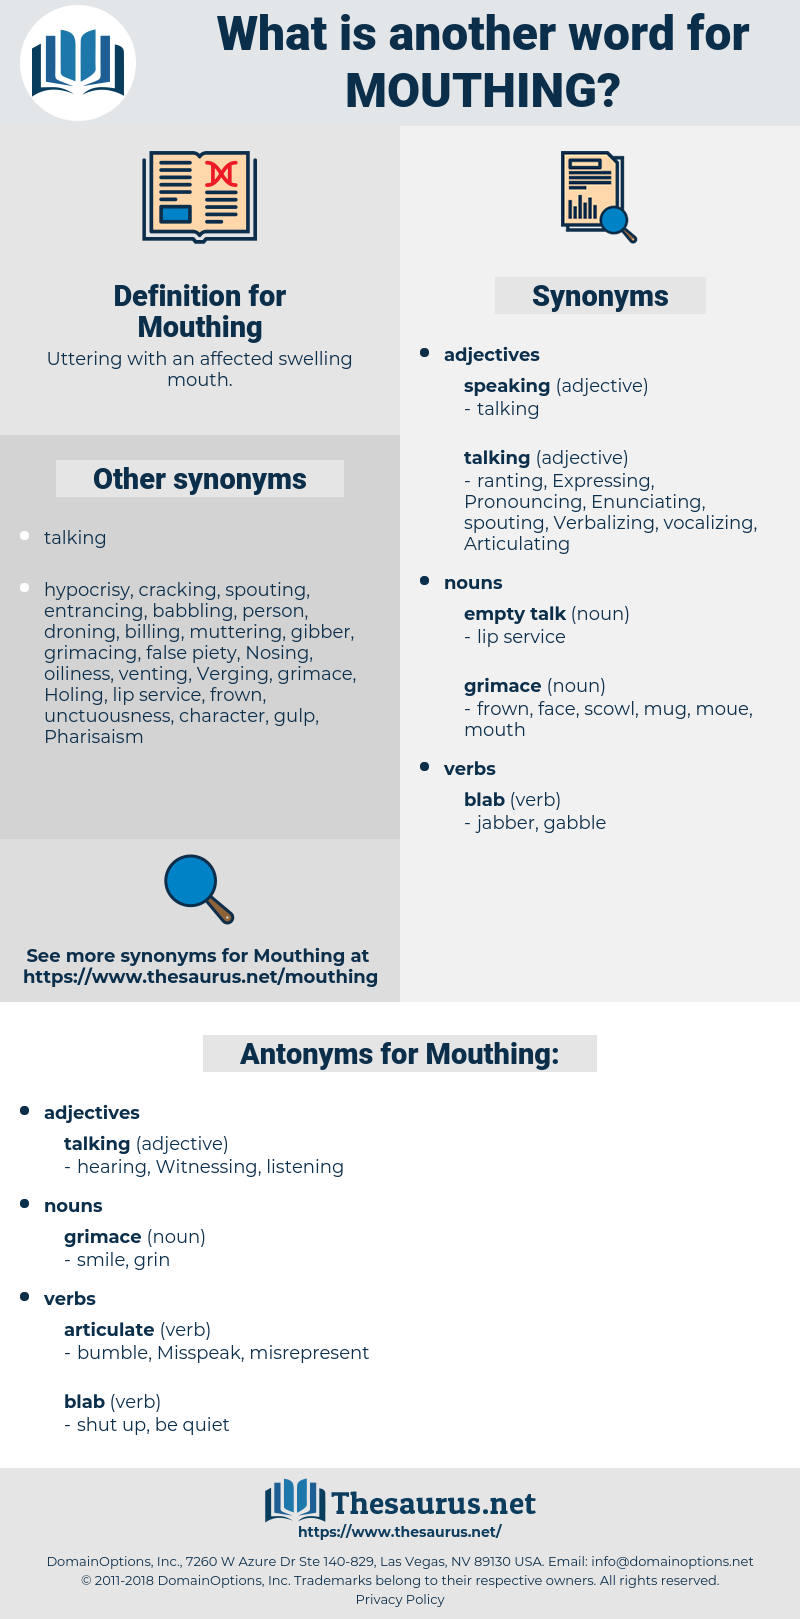 Mouthing, synonym Mouthing, another word for Mouthing, words like Mouthing, thesaurus Mouthing